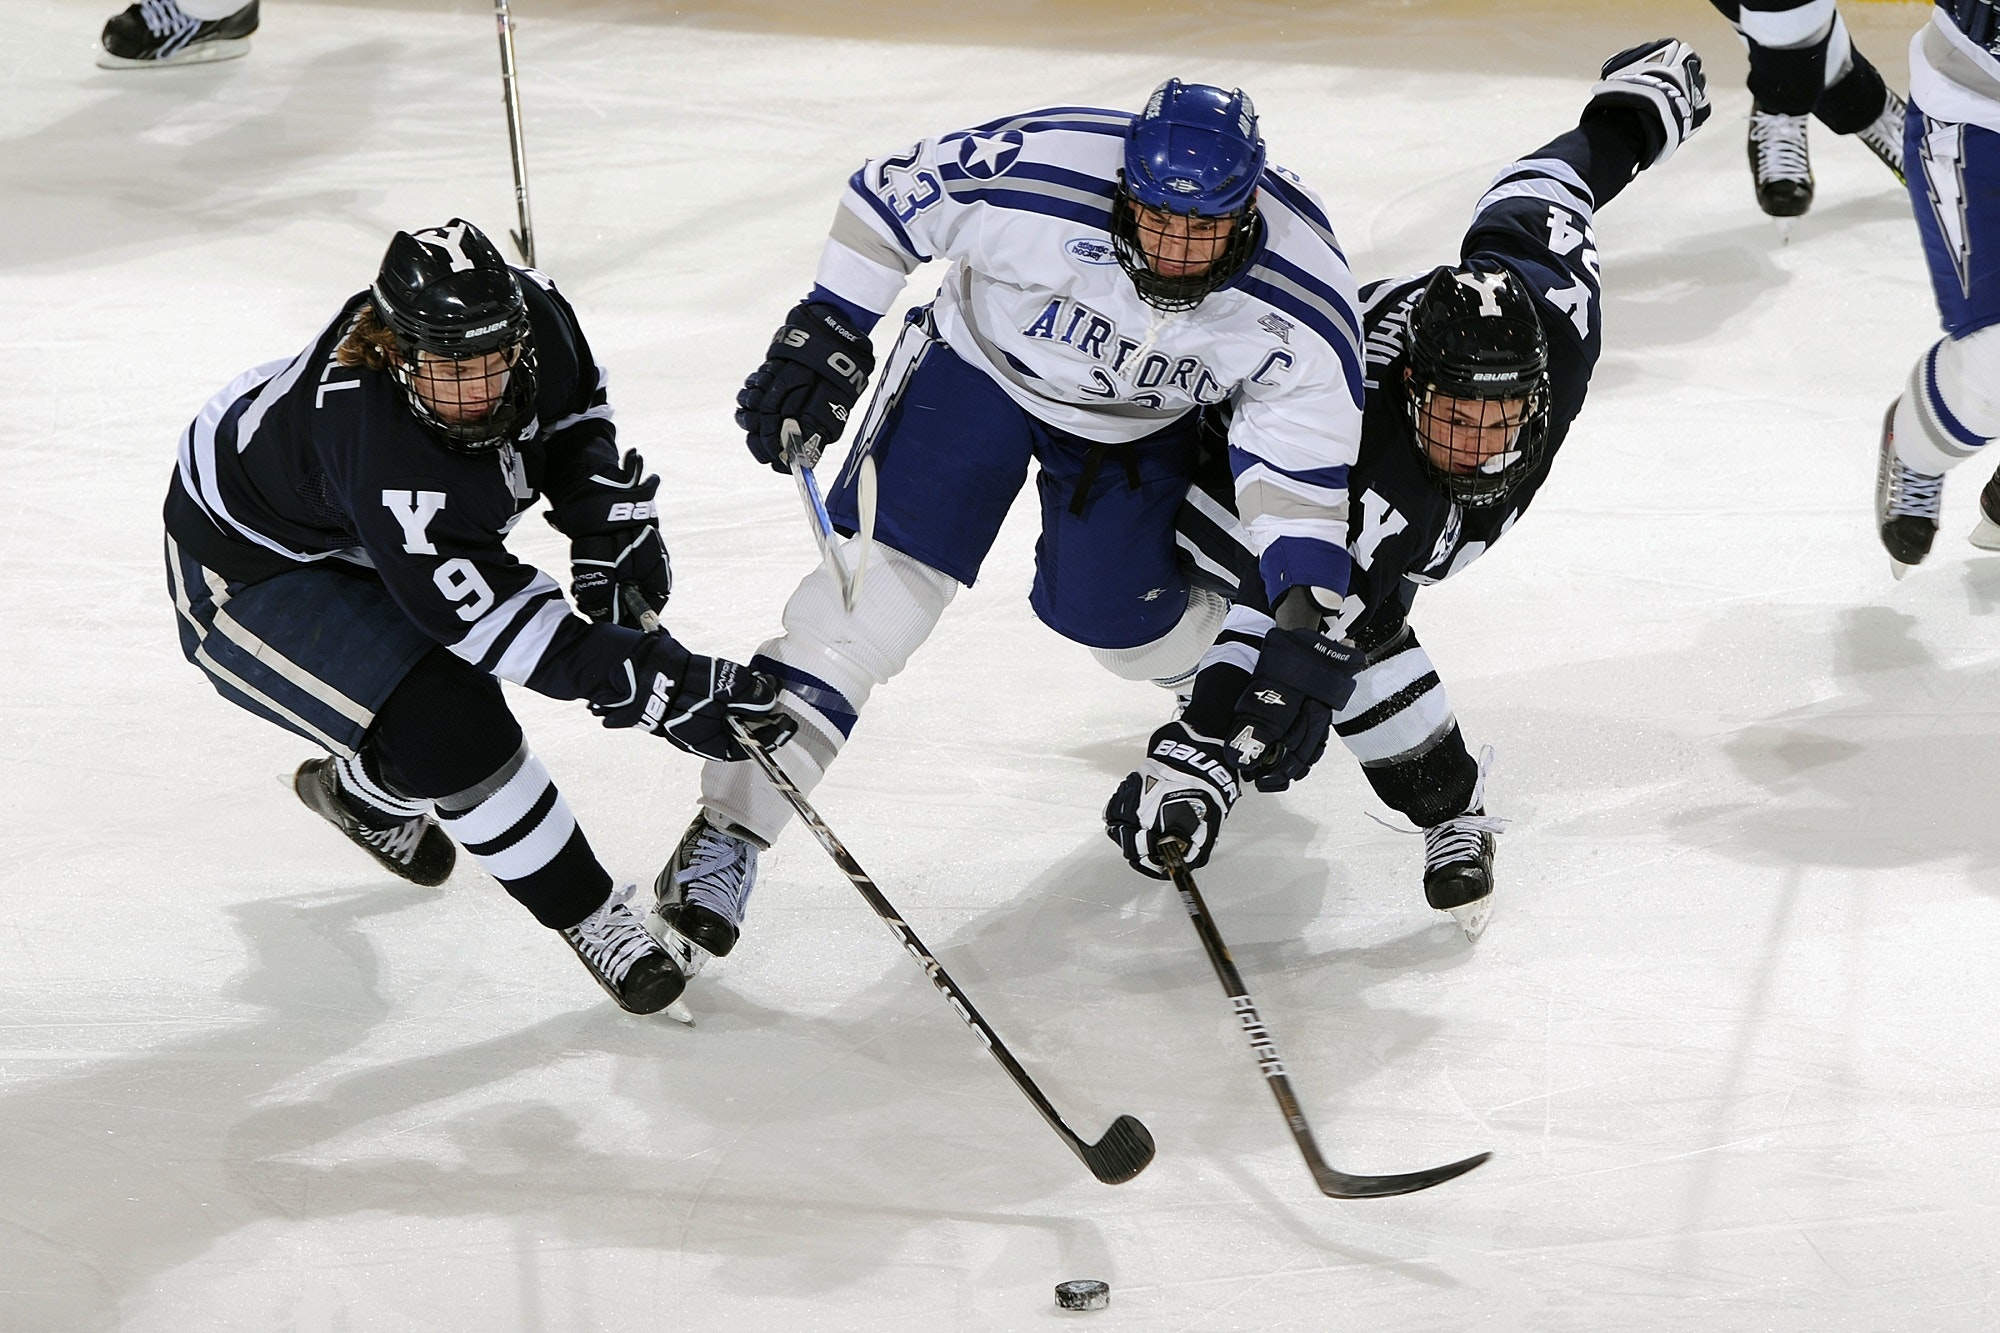 Men's in Blue and White Jersey Shirt Playing Hockey, Rink, Puck, Playing, Players, HQ Photo